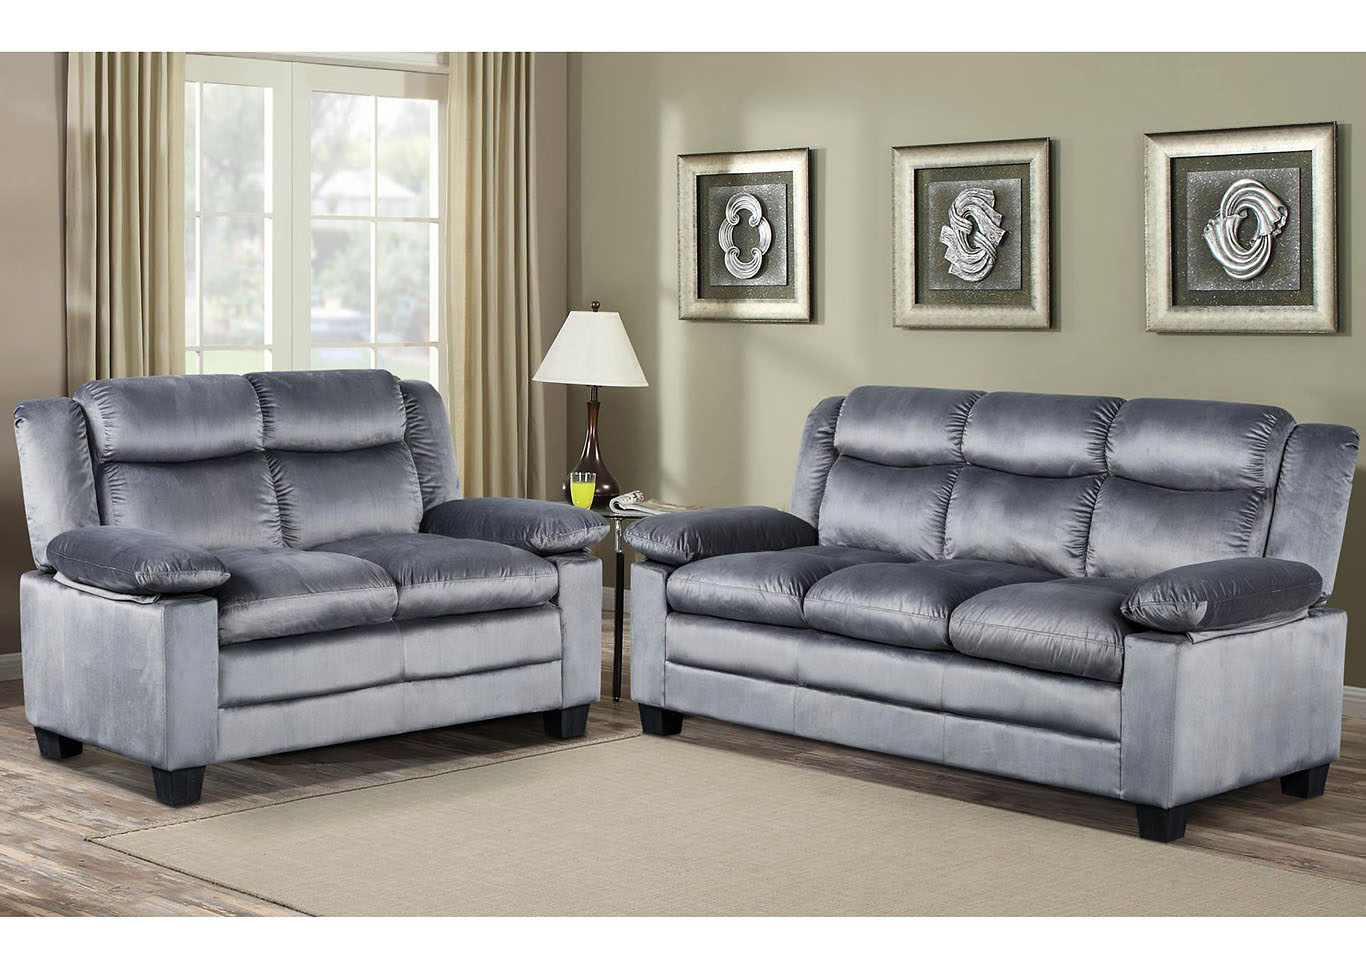 Silver Grey Sofa & Loveseat,Global Trading